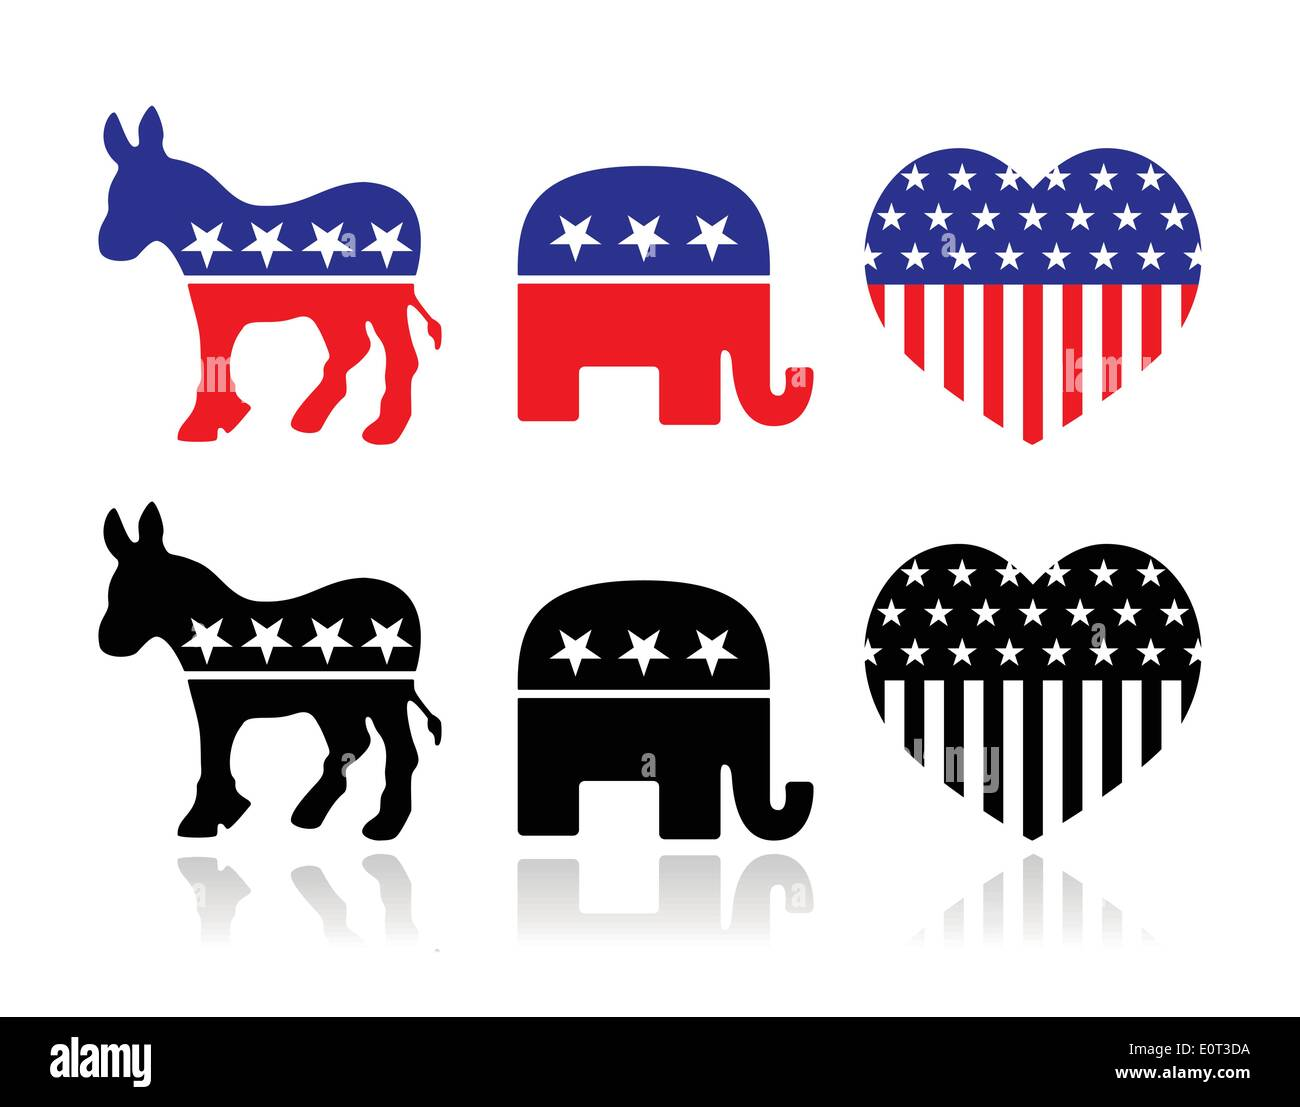 Usa Political Parties Symbols Democrats And Republicans Stock